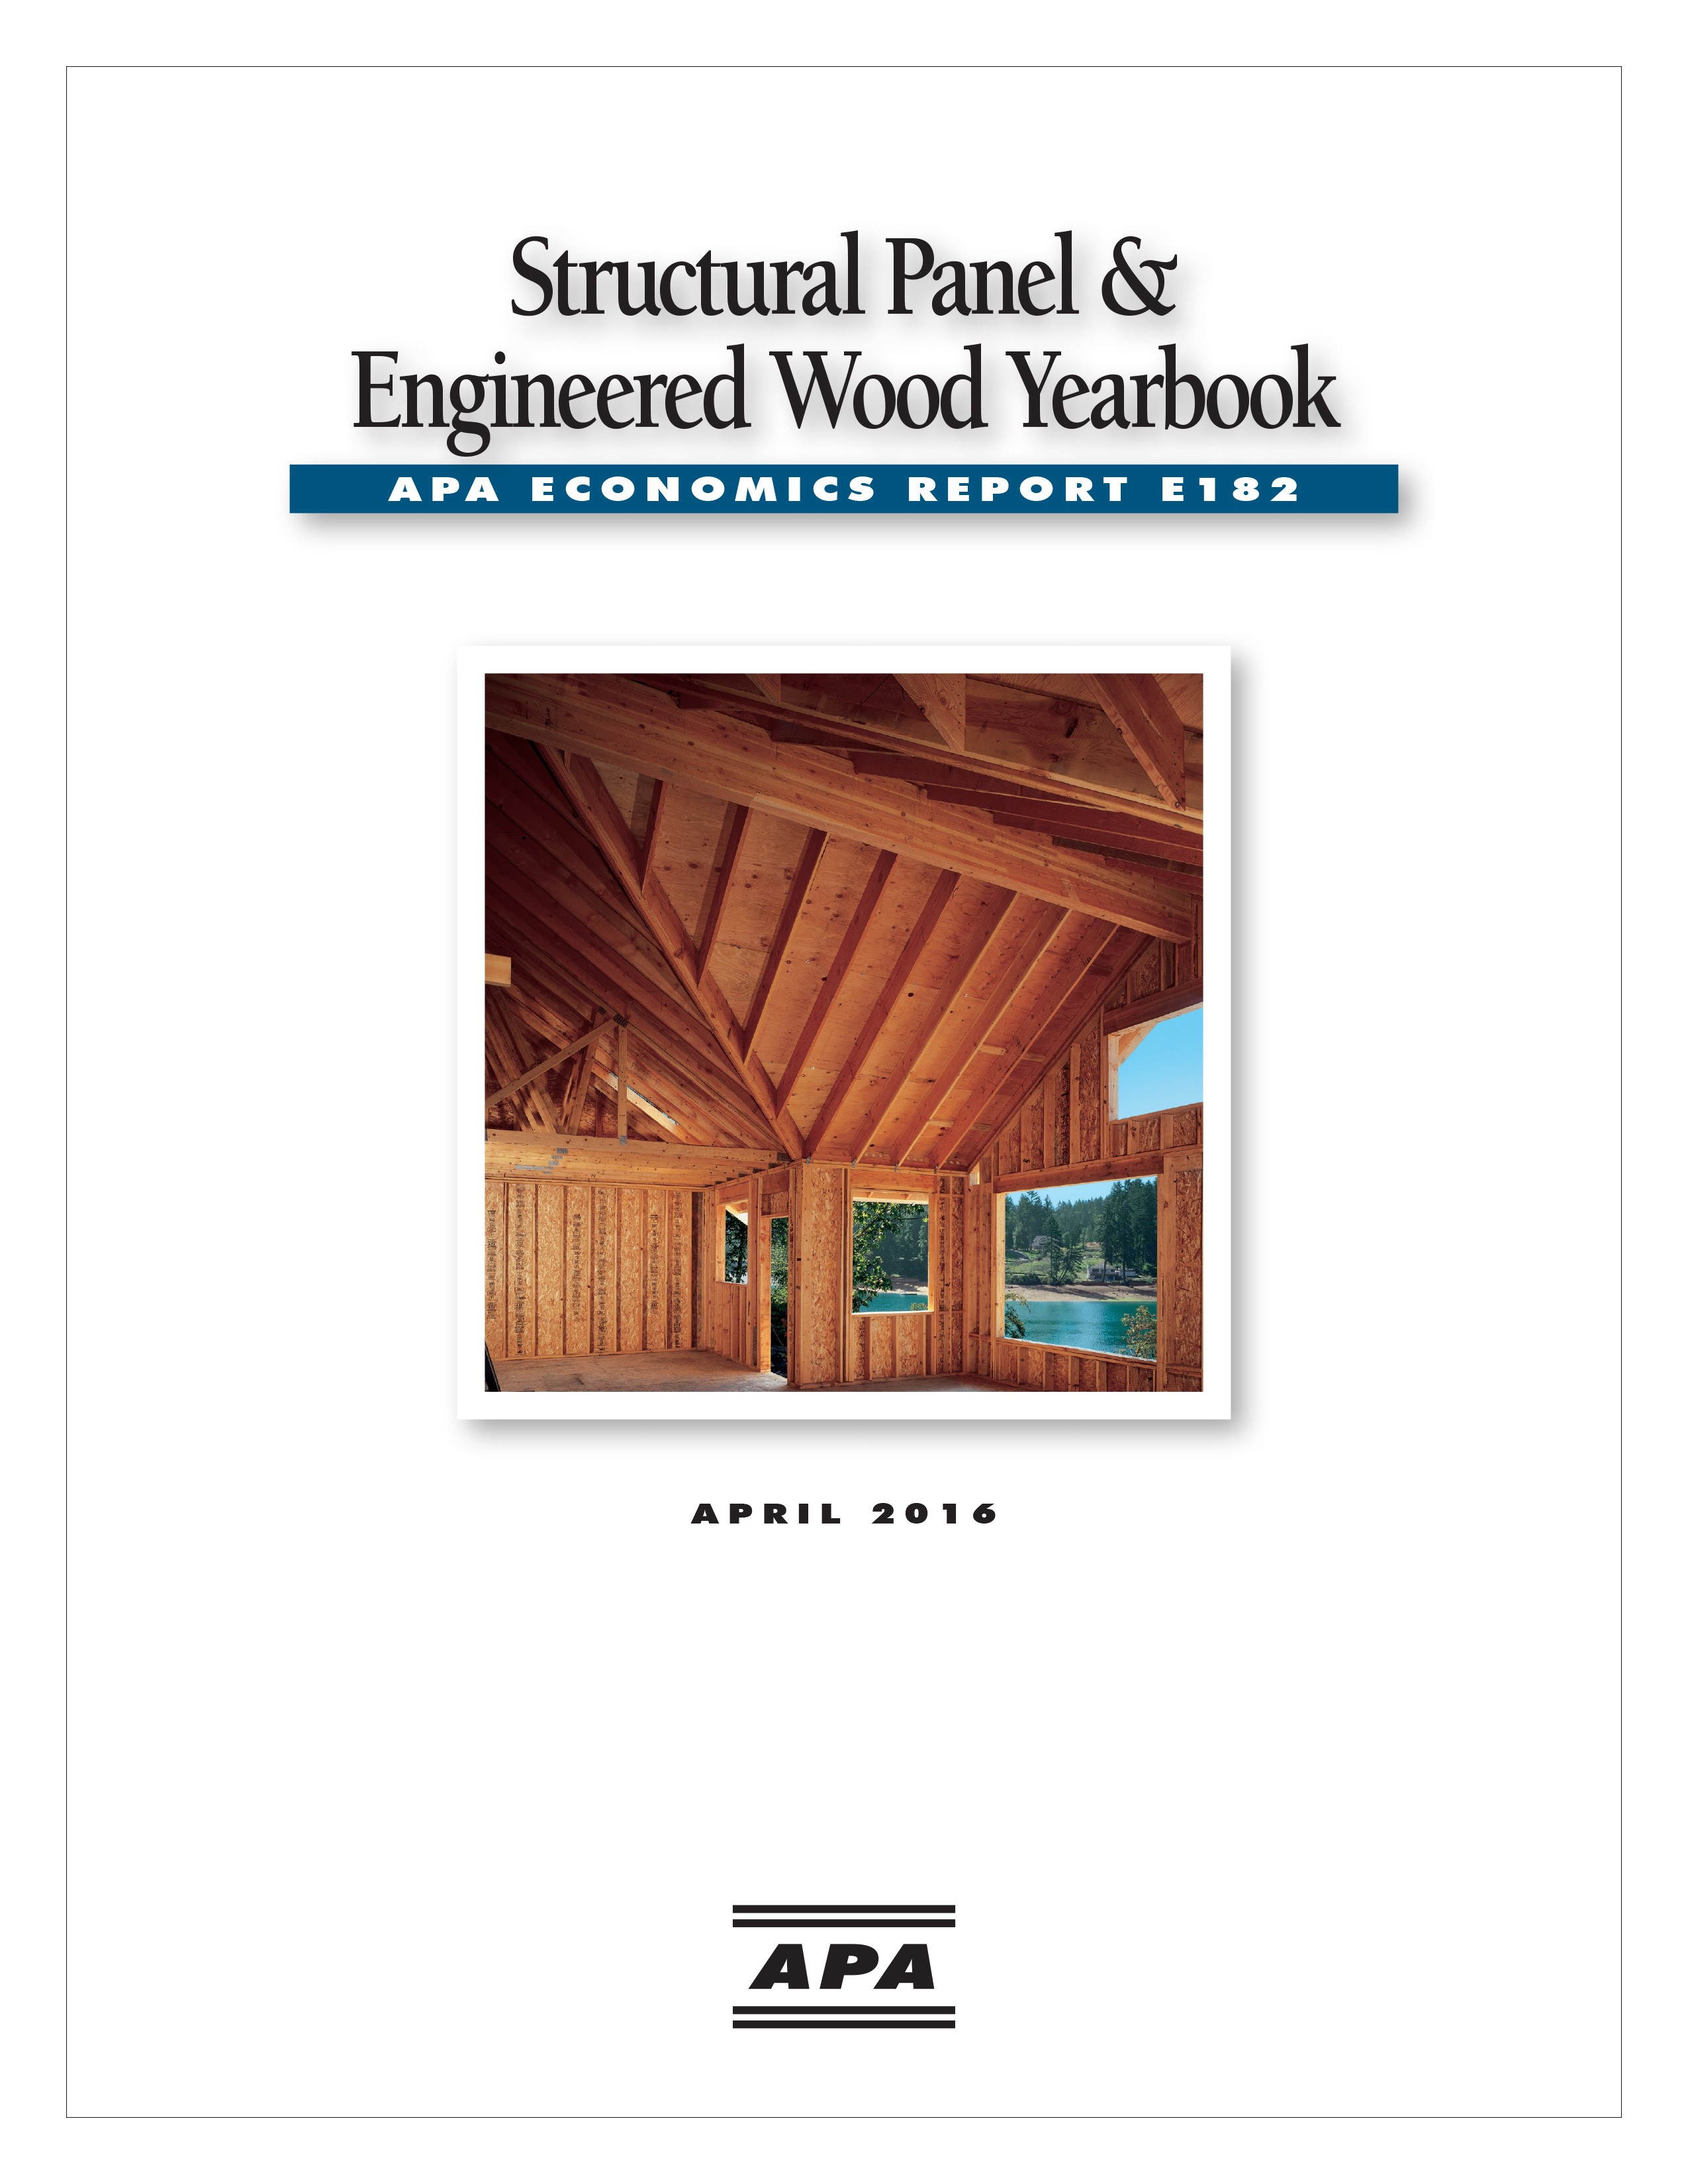 2017 Structural Panel and Engineered Wood Yearbook